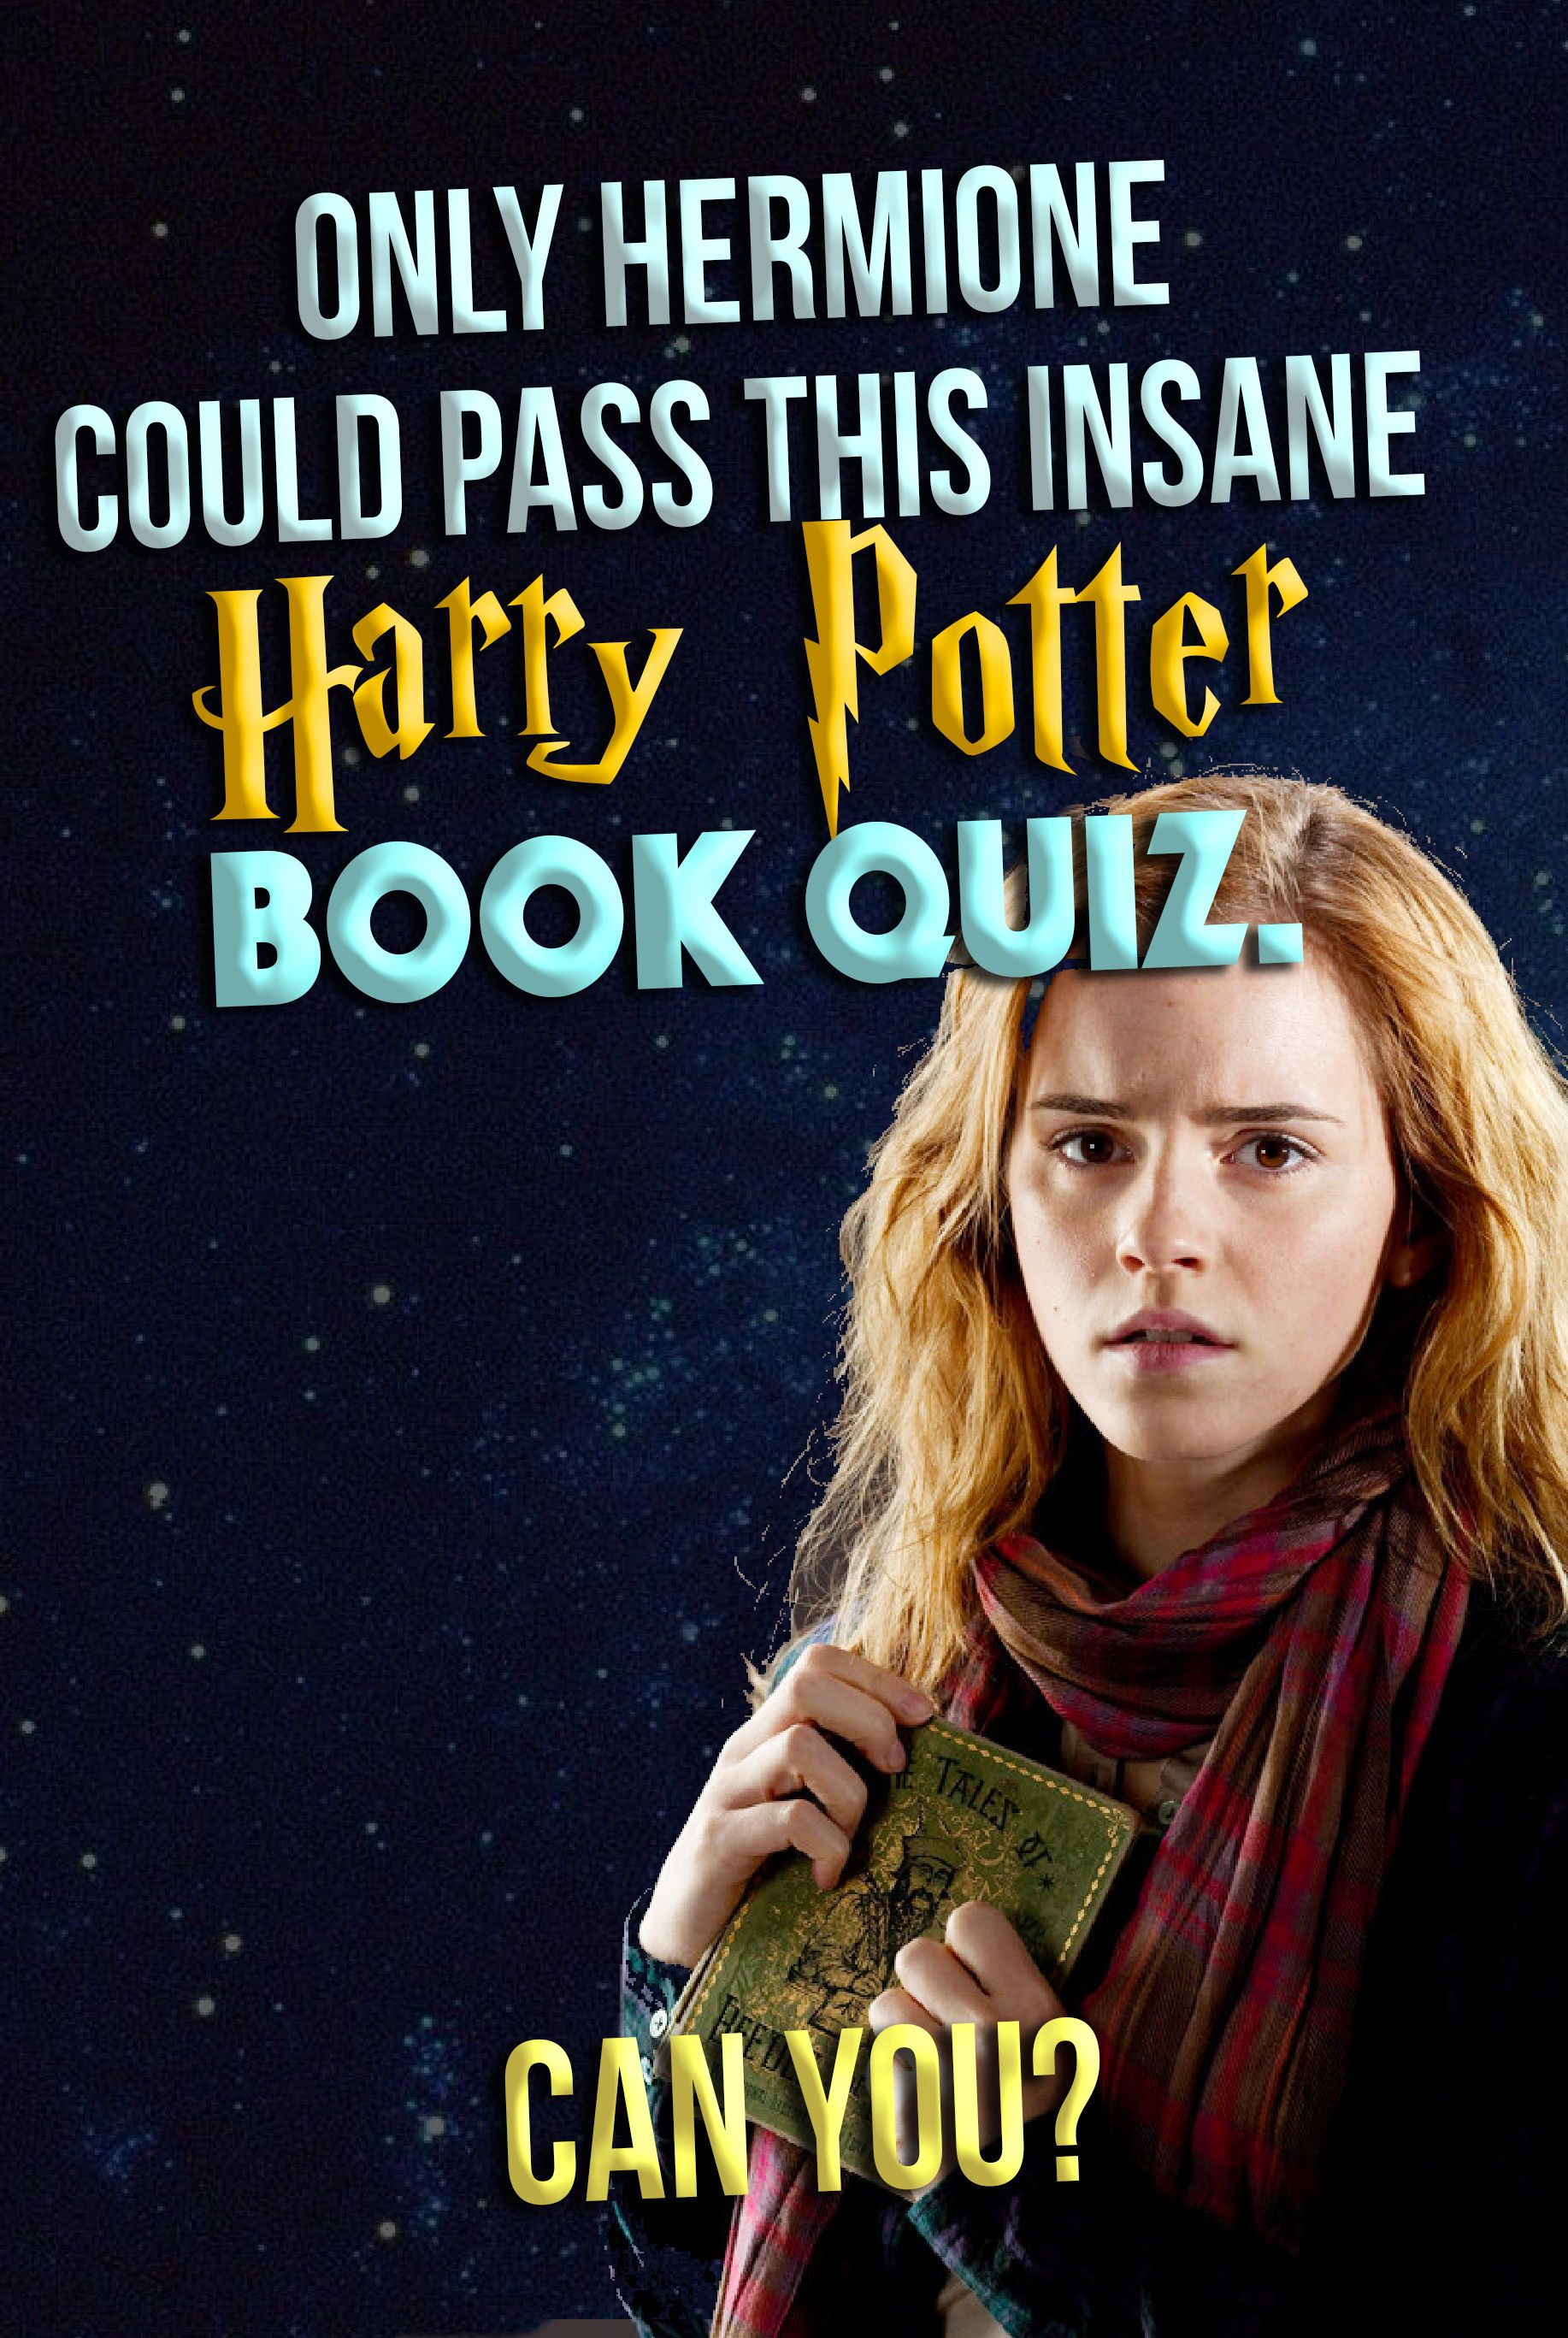 Hogwarts Quiz Are You Smarter Than Hermione Take This Crazy Hard Harry Potter Trivia Harry Potter Trivia Questions Harry Potter Questions Harry Potter Facts